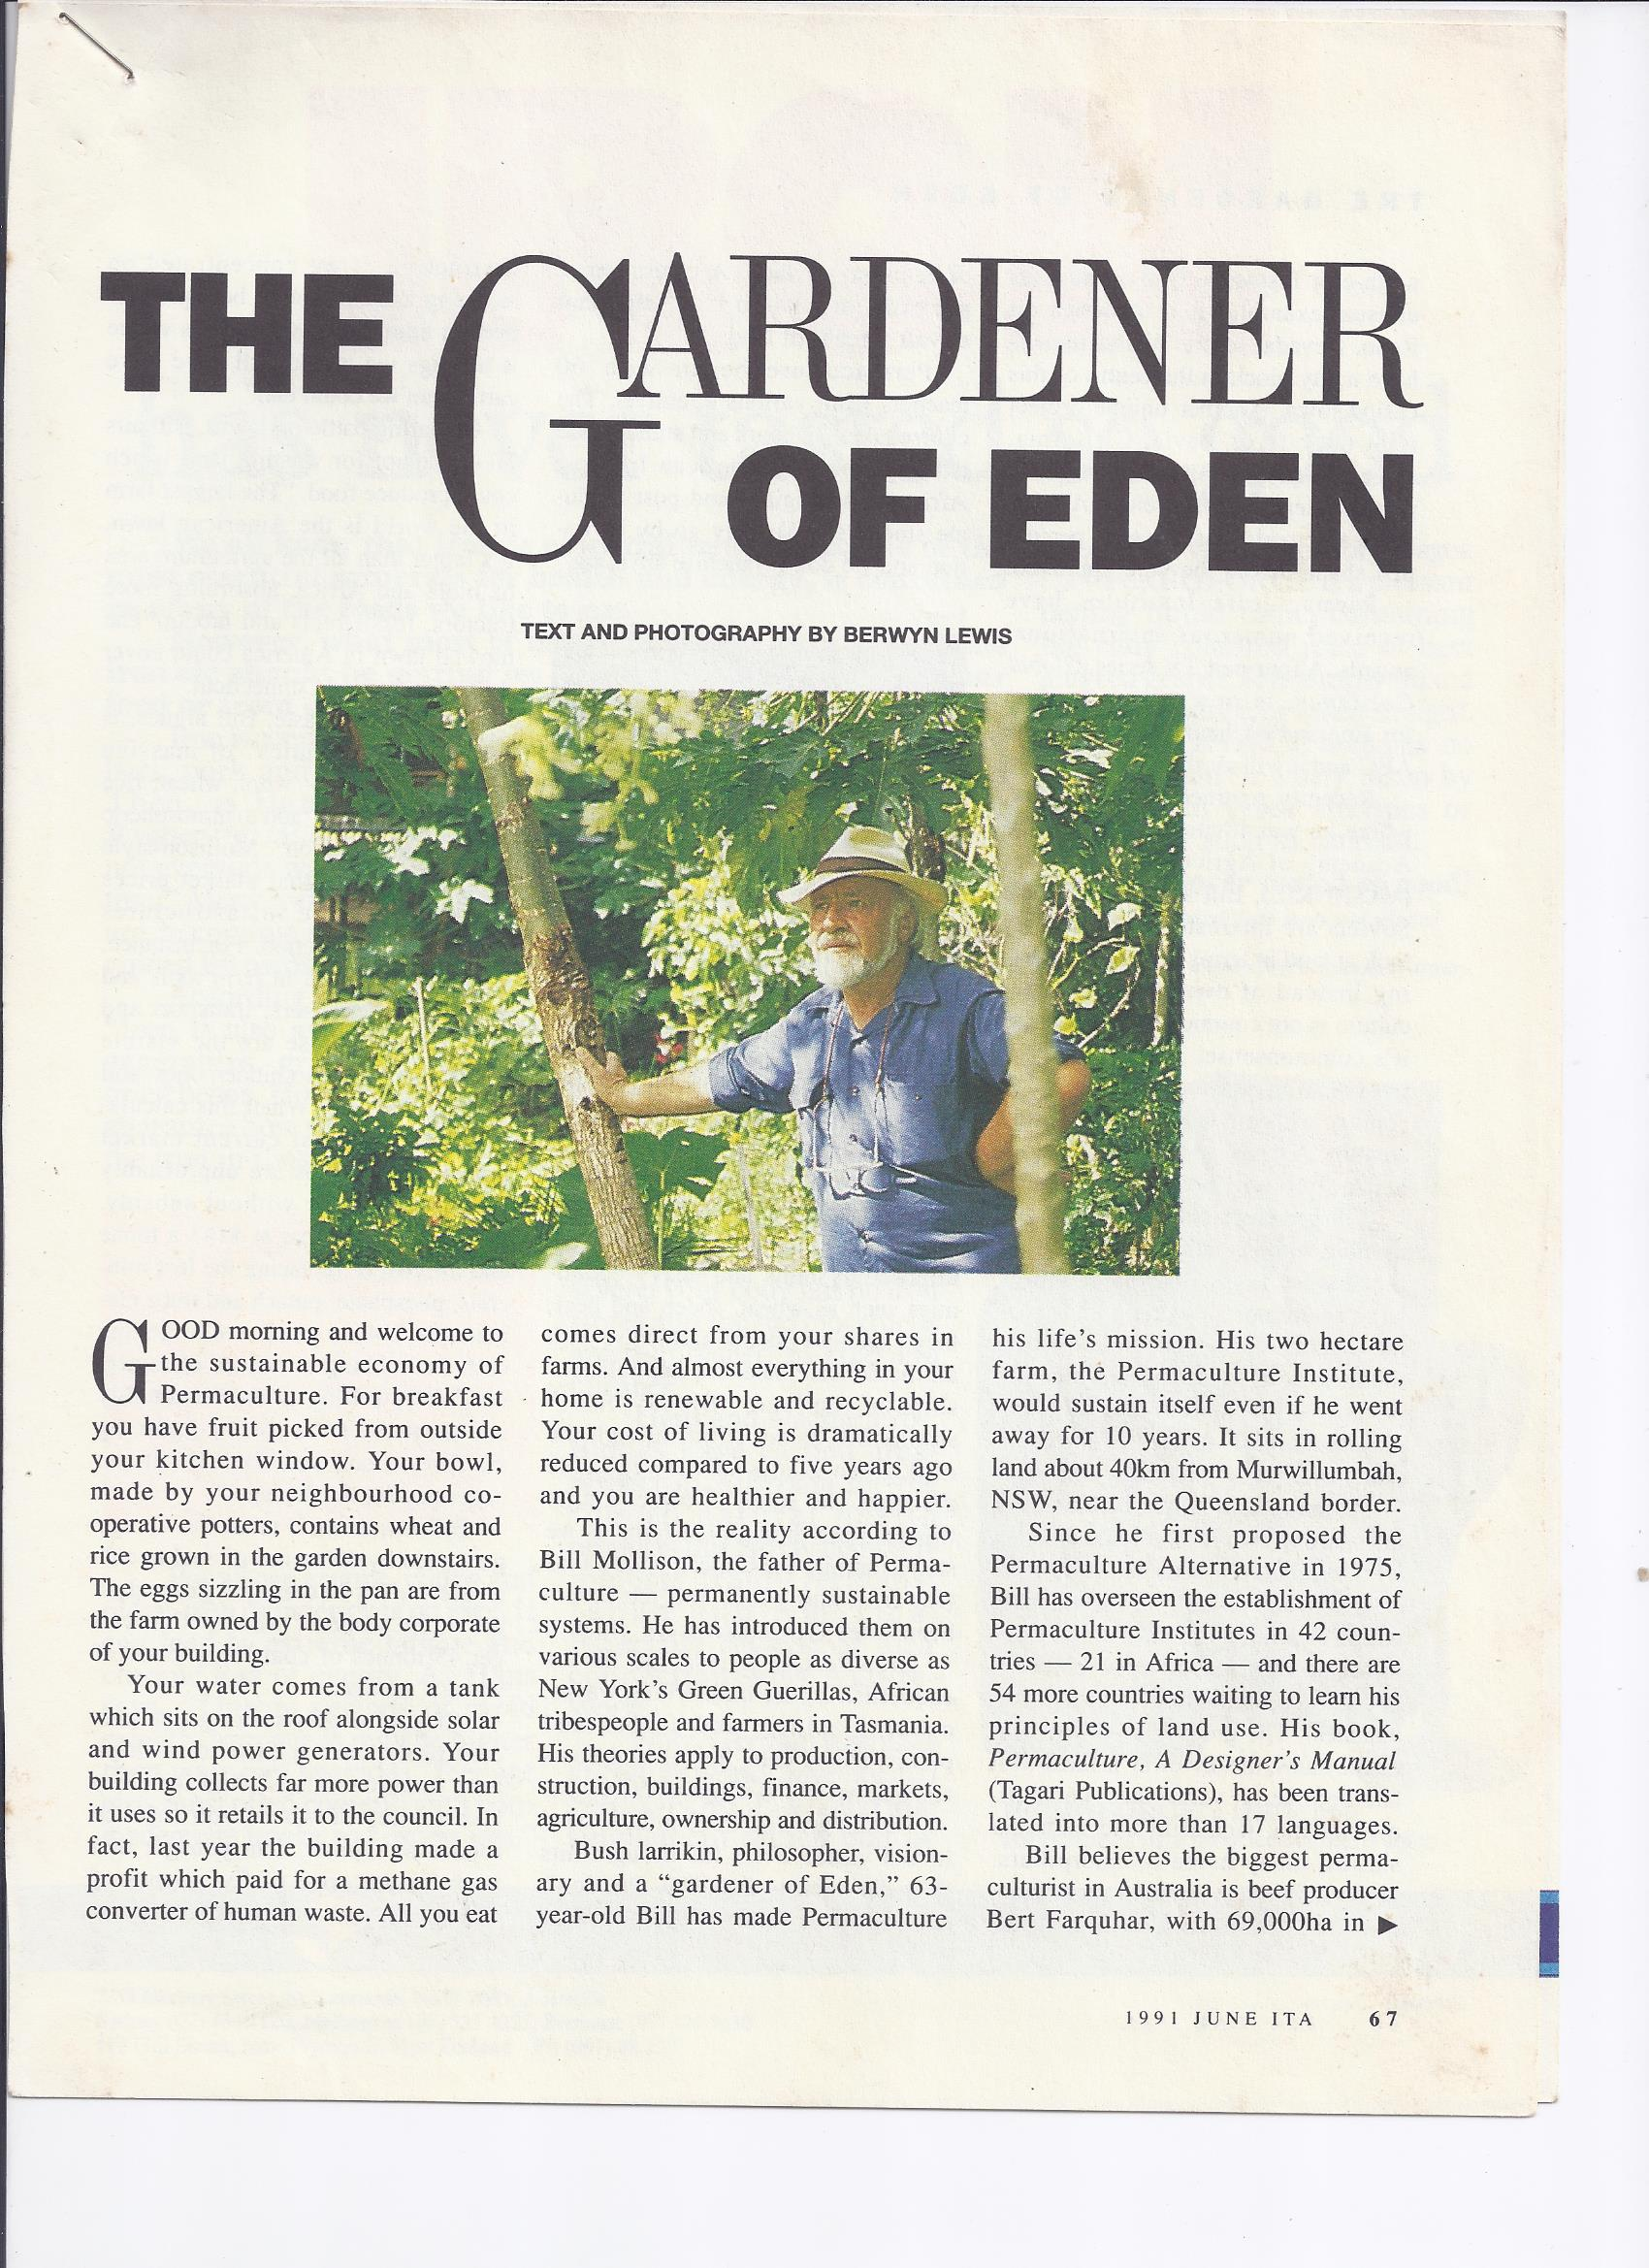 Bill Mollison Permaculture Founder0001.jpg